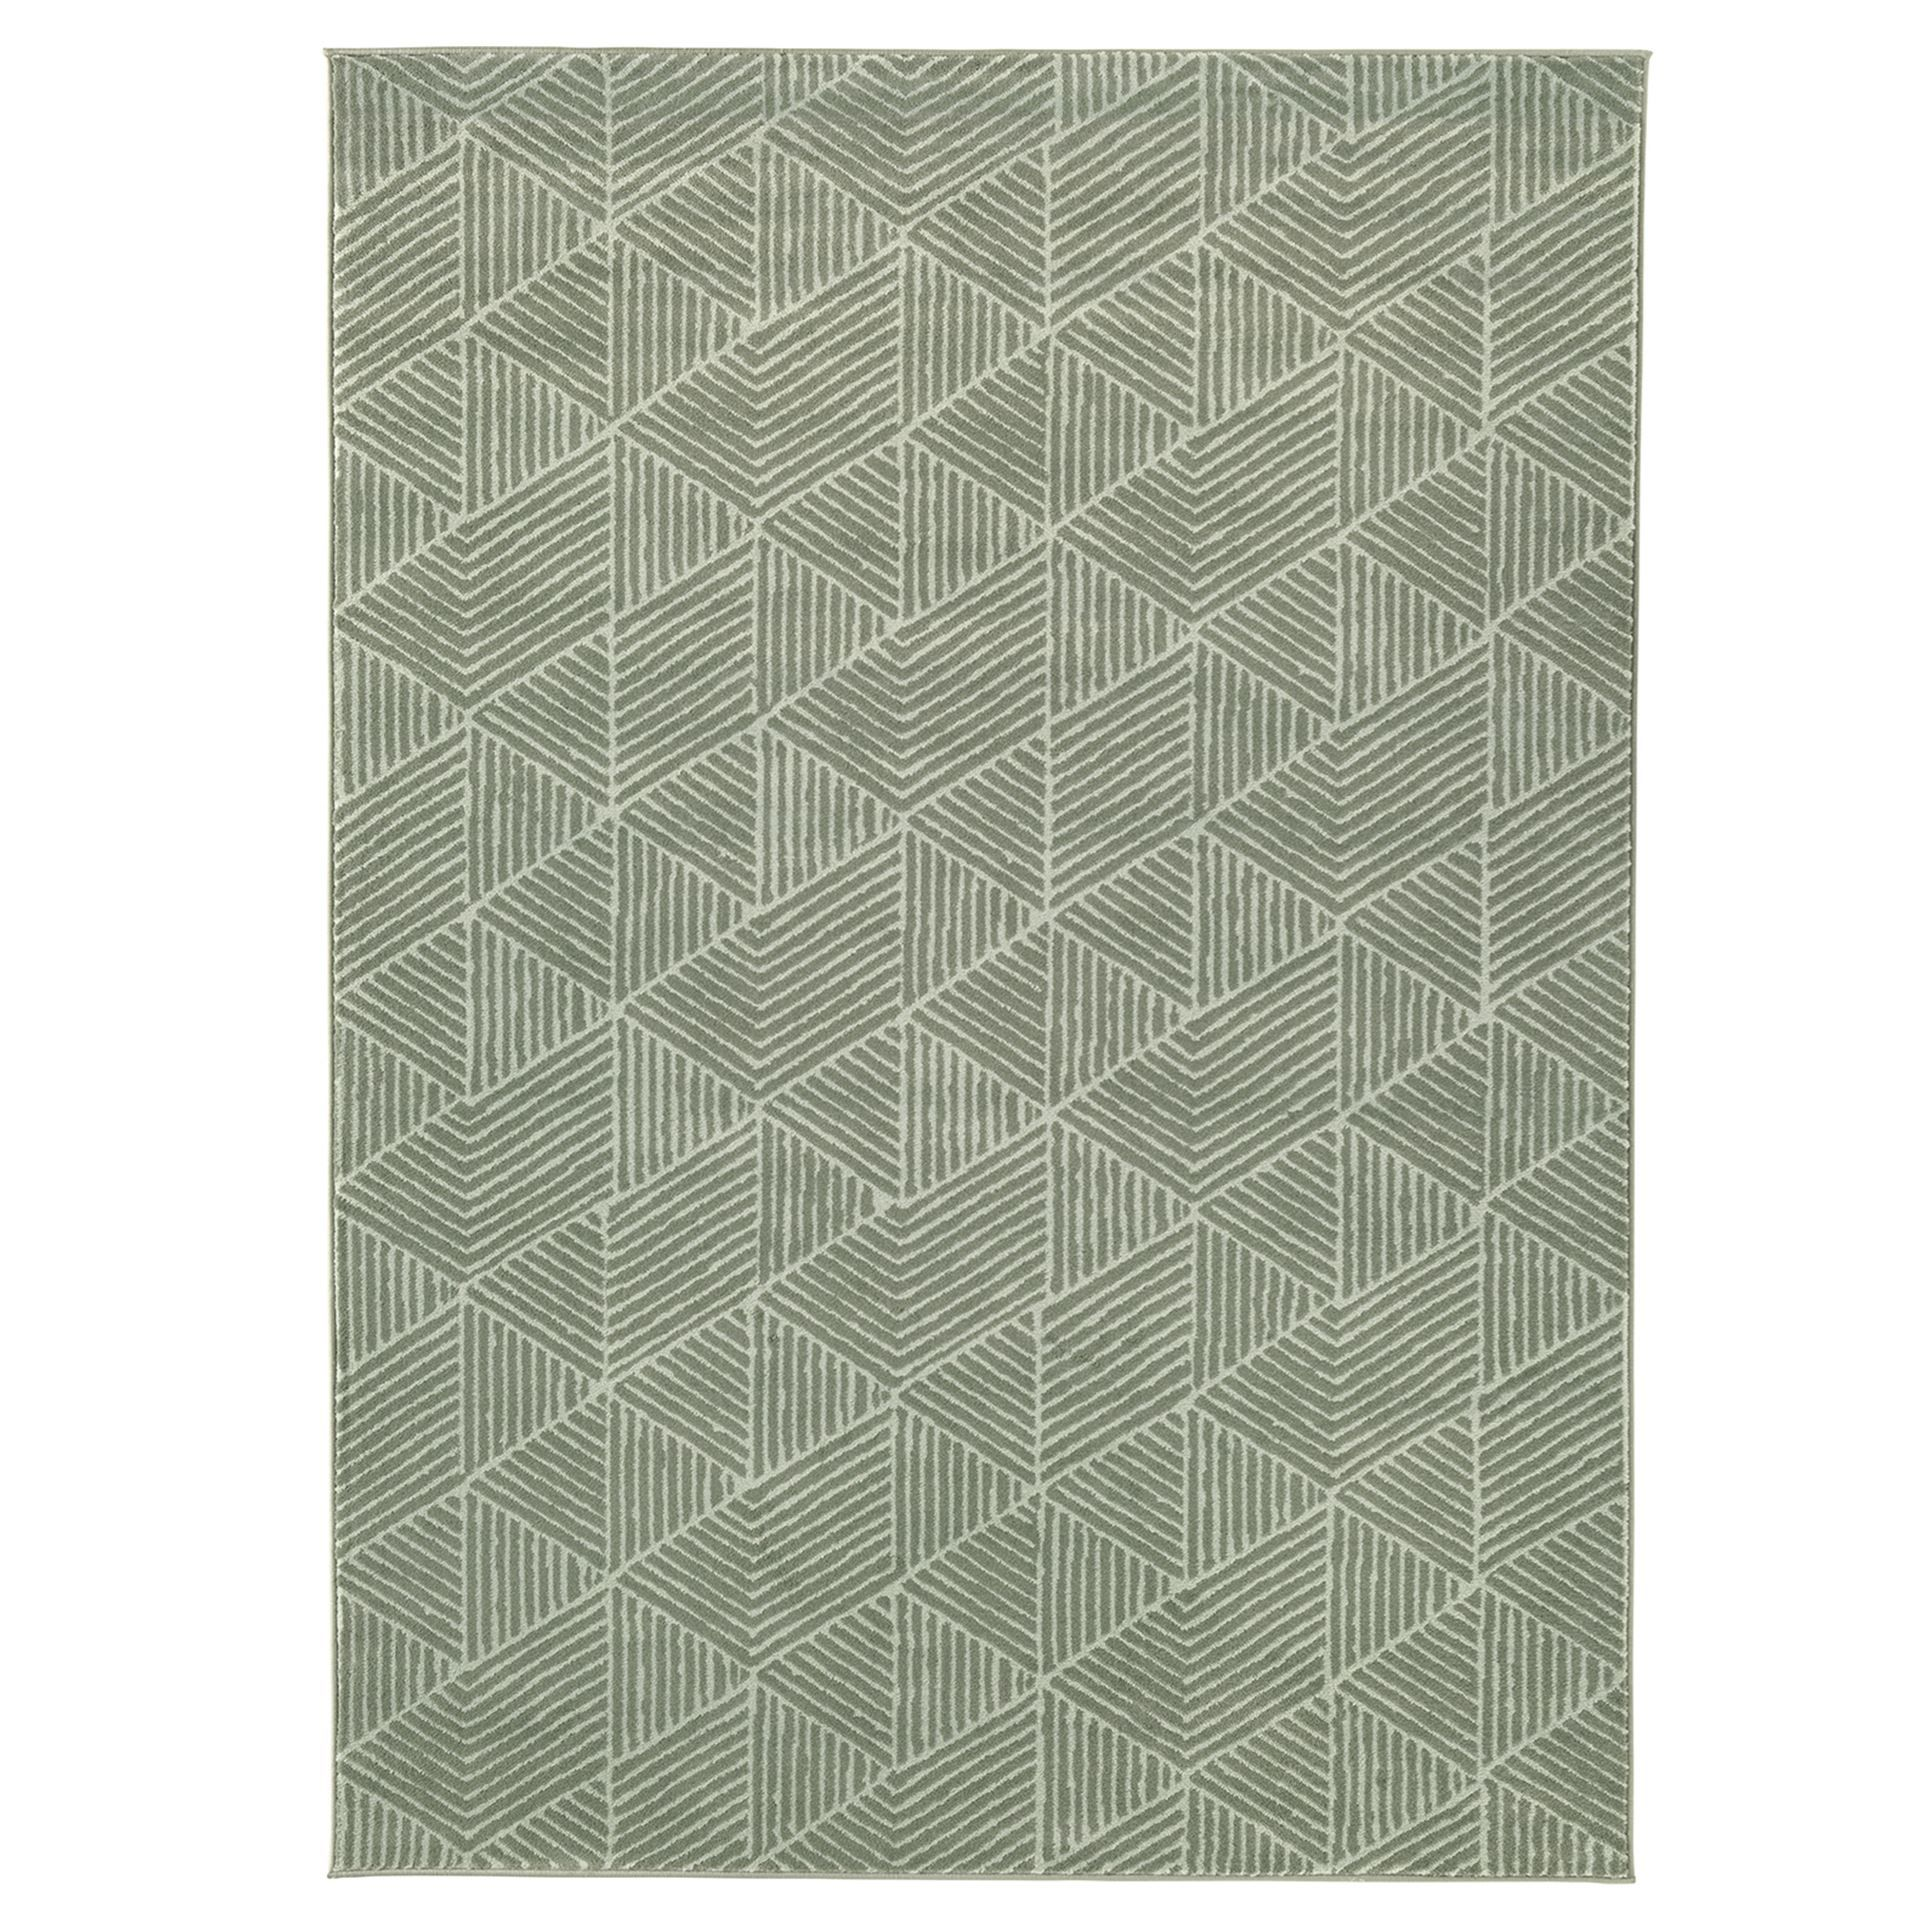 Ikea Rug Size Guide Usa: New Ikea Products In Store February